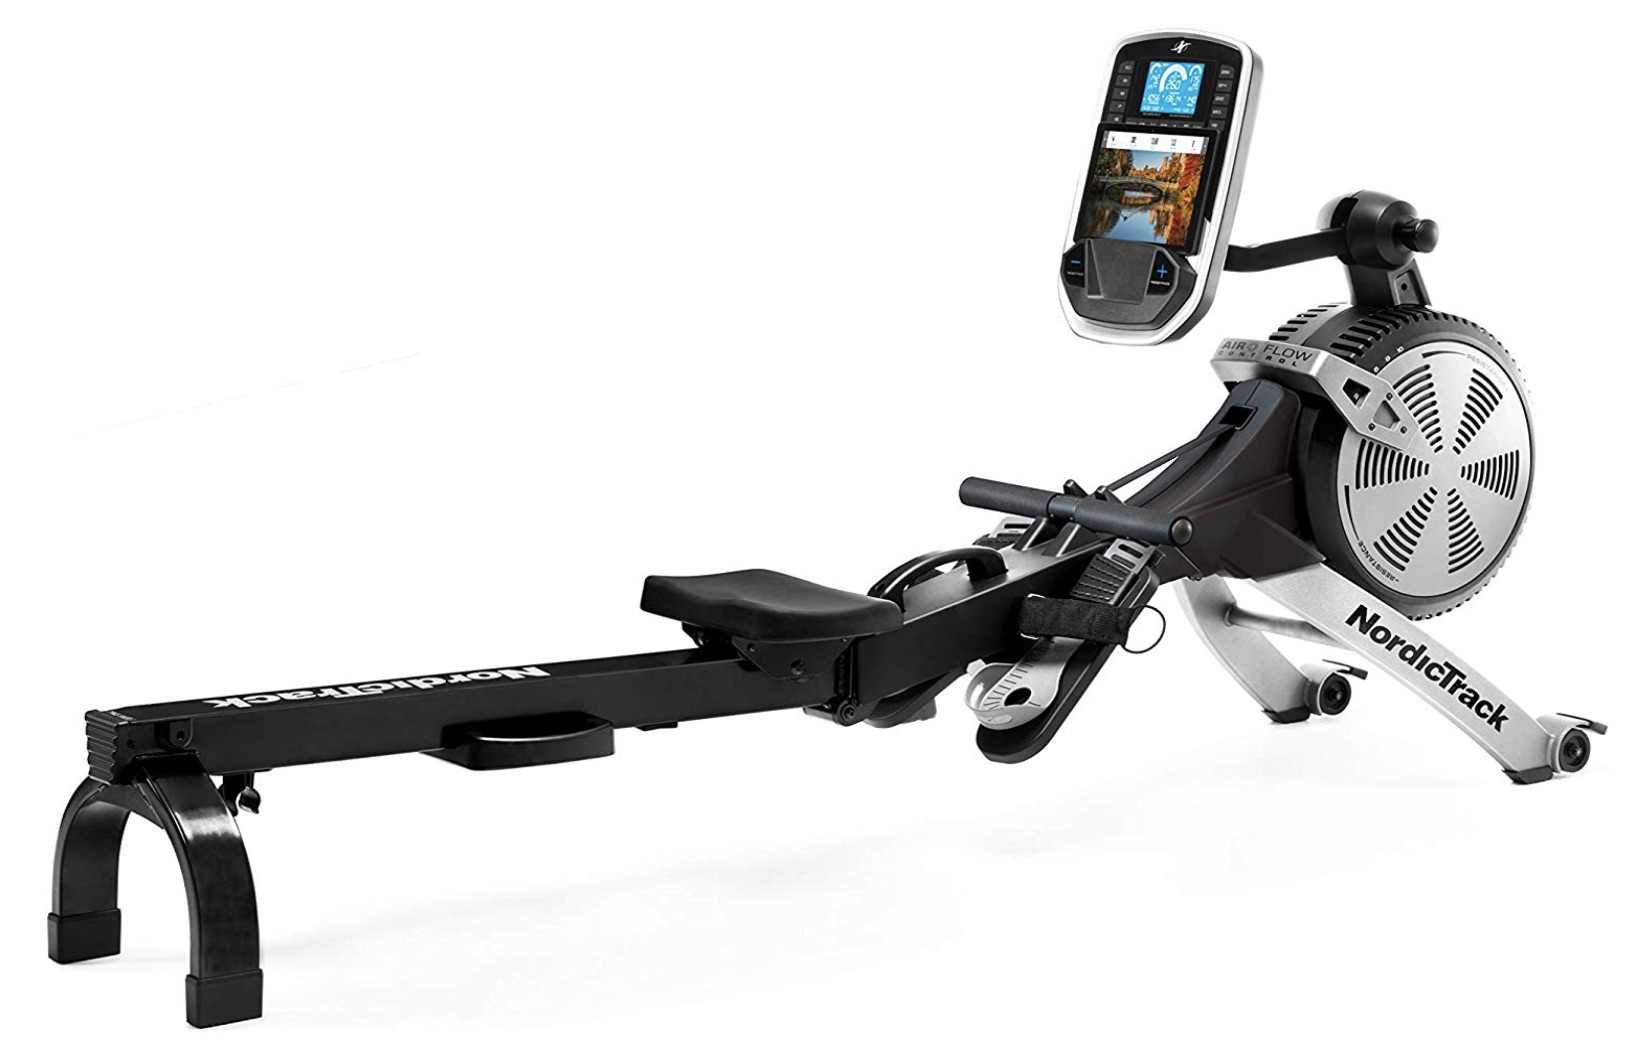 NordicTrack RW500 Rower Review